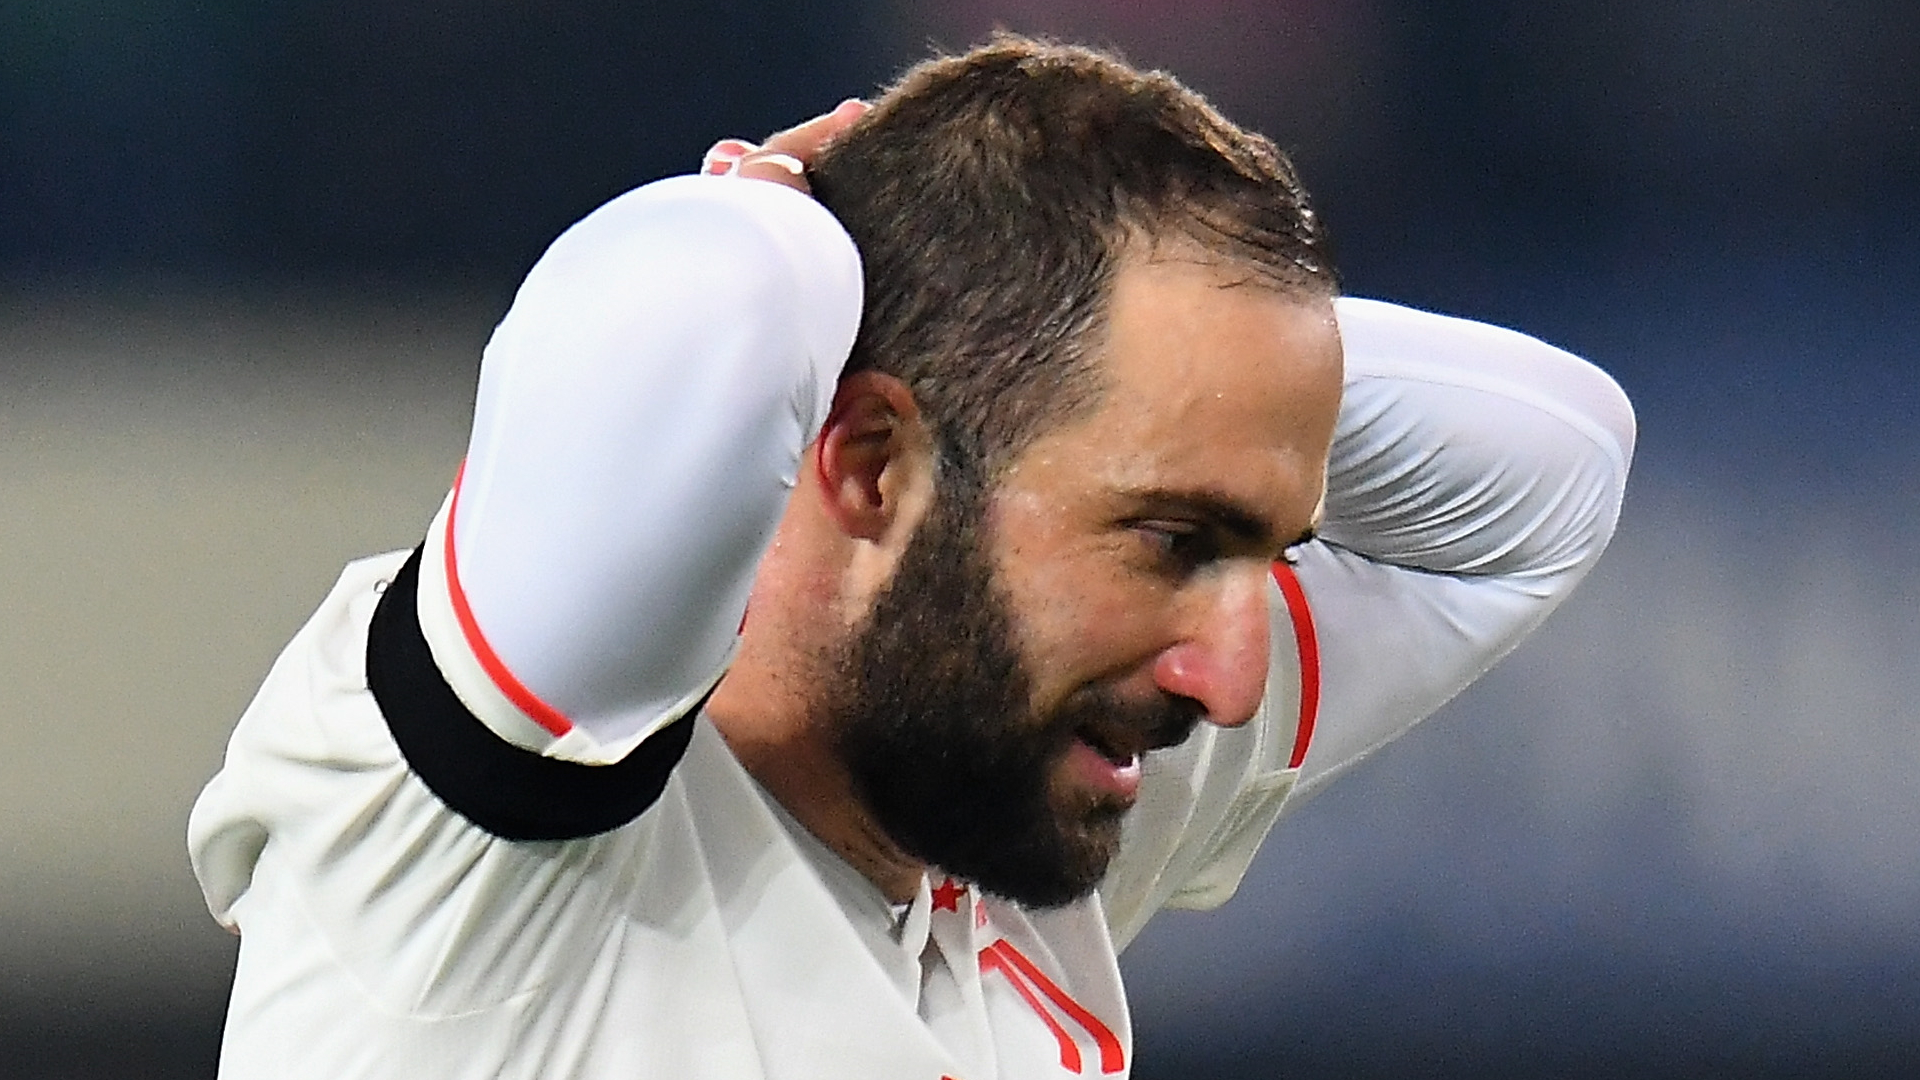 'Sensitive' Higuain ready to return from coronavirus break for Juventus - Sarri